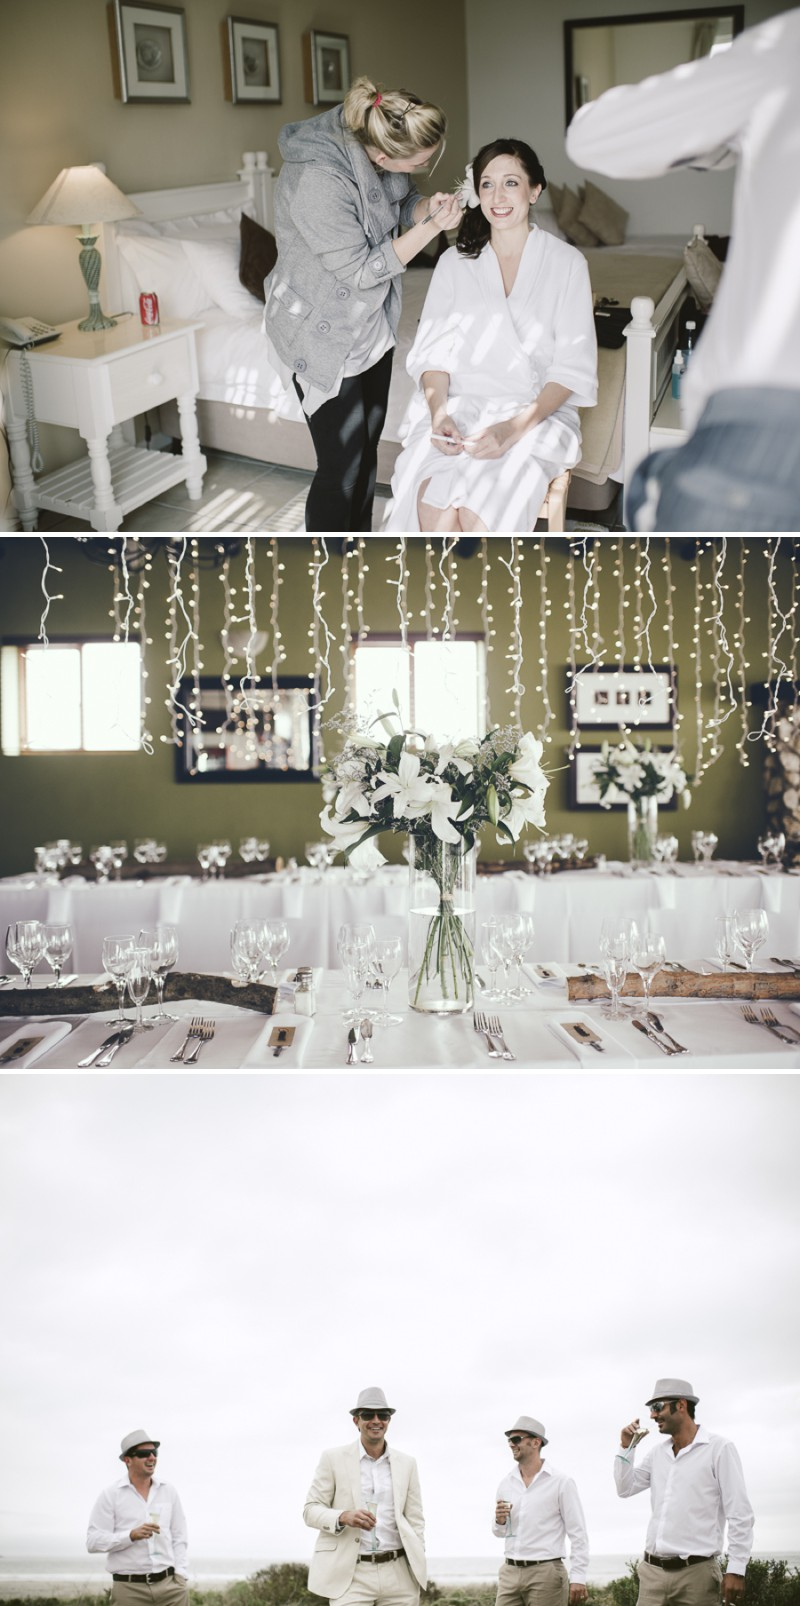 A South African Destination Beach Wedding At Pasternoster Lodge With A Grey Colour Scheme And A Raw Chiffon Bespoke Wedding Dress With A White Lily Bouquet Photographed By Jules Morgan._0002